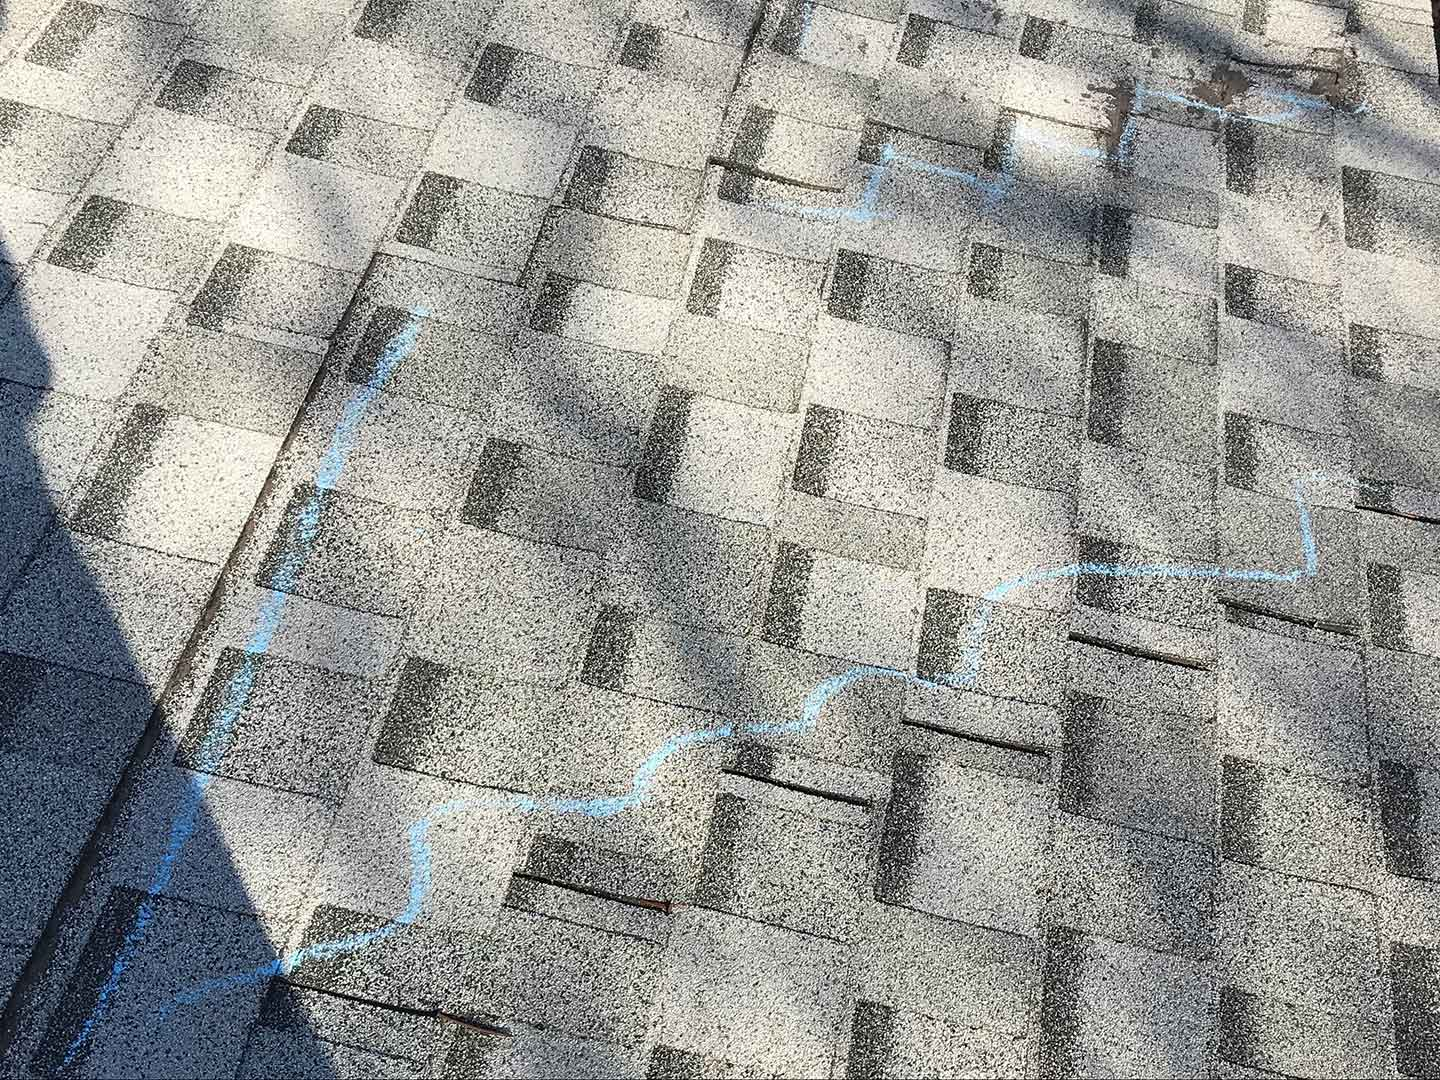 Because of the poor installation, the shingles were able to move and shift.